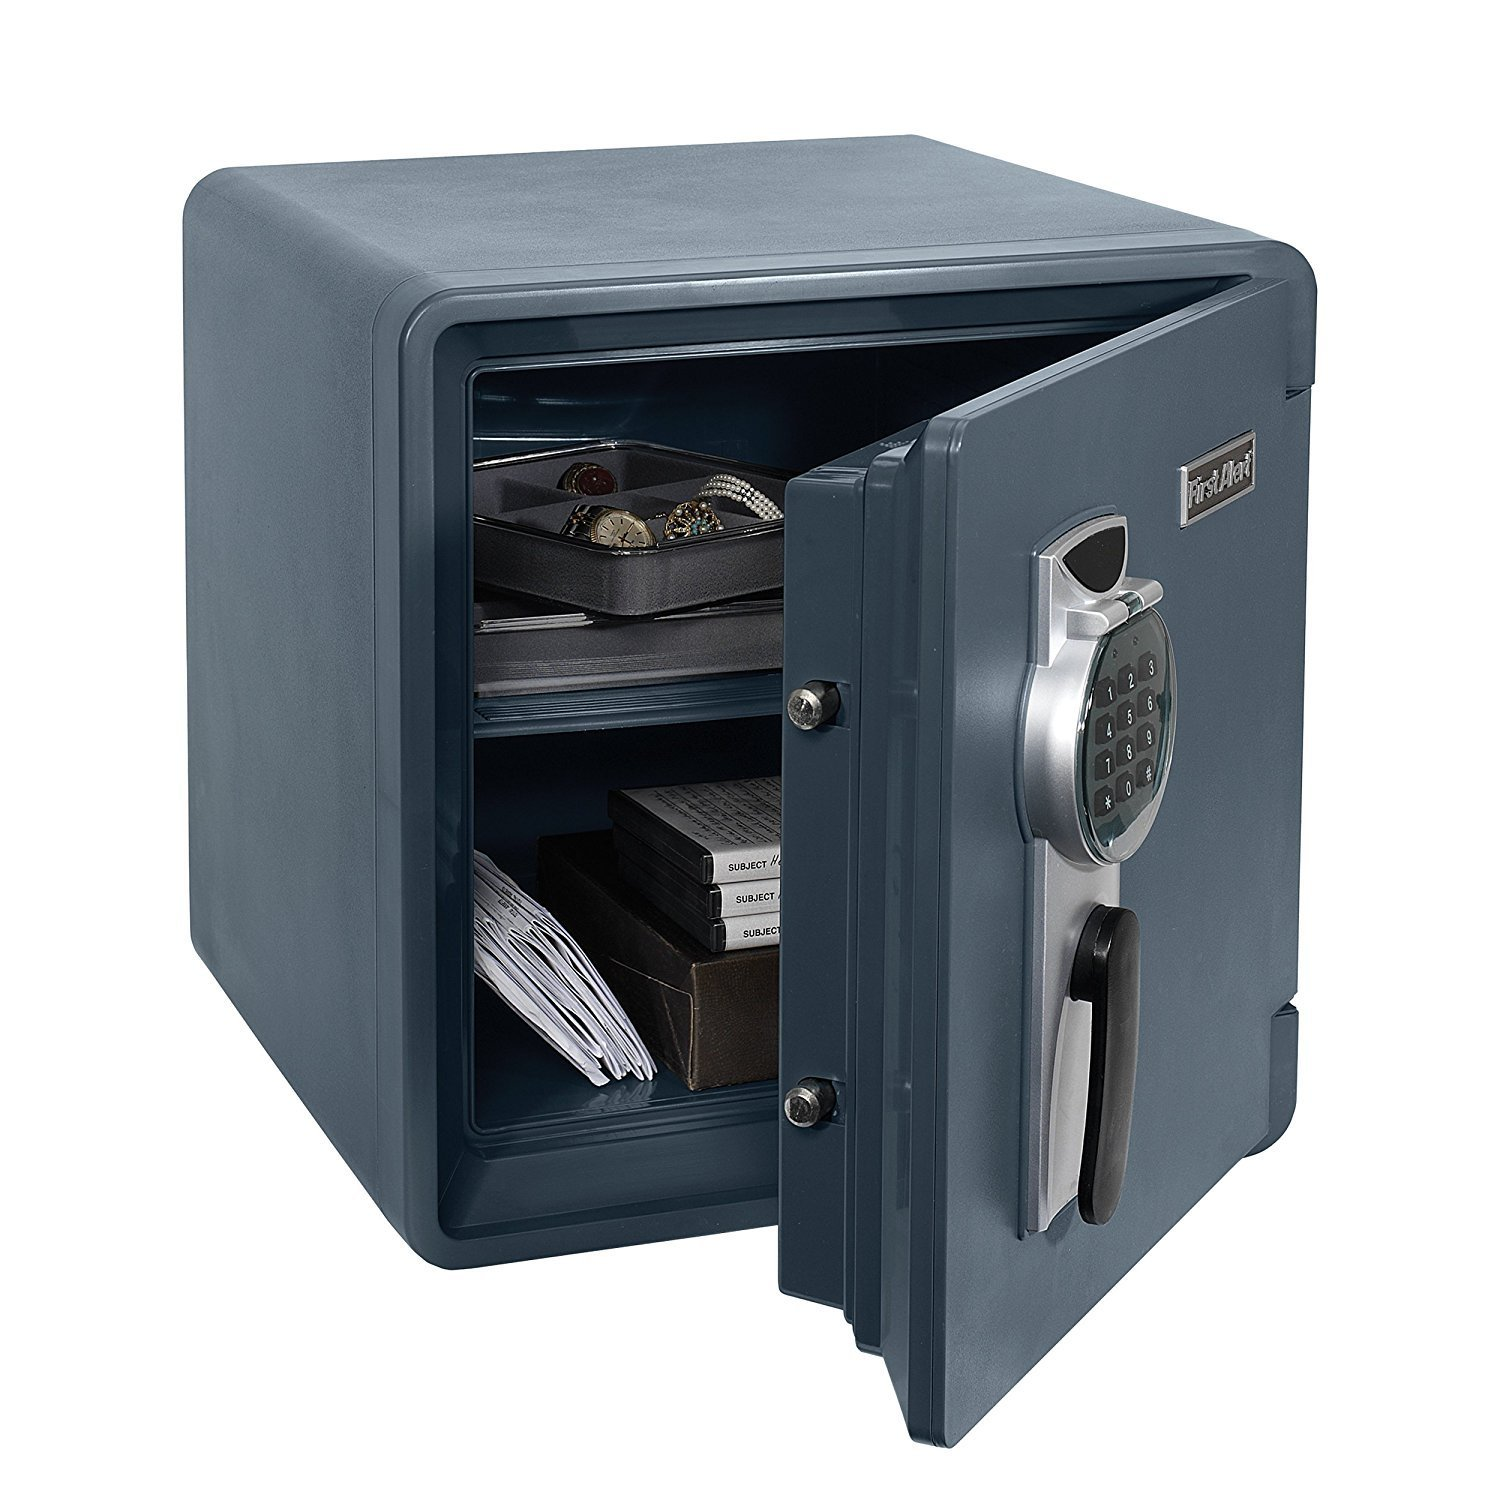 First Alert 2092DF Waterproof and Fire-Resistant Digital Safe, 1.31 Cubic Feet by First Alert